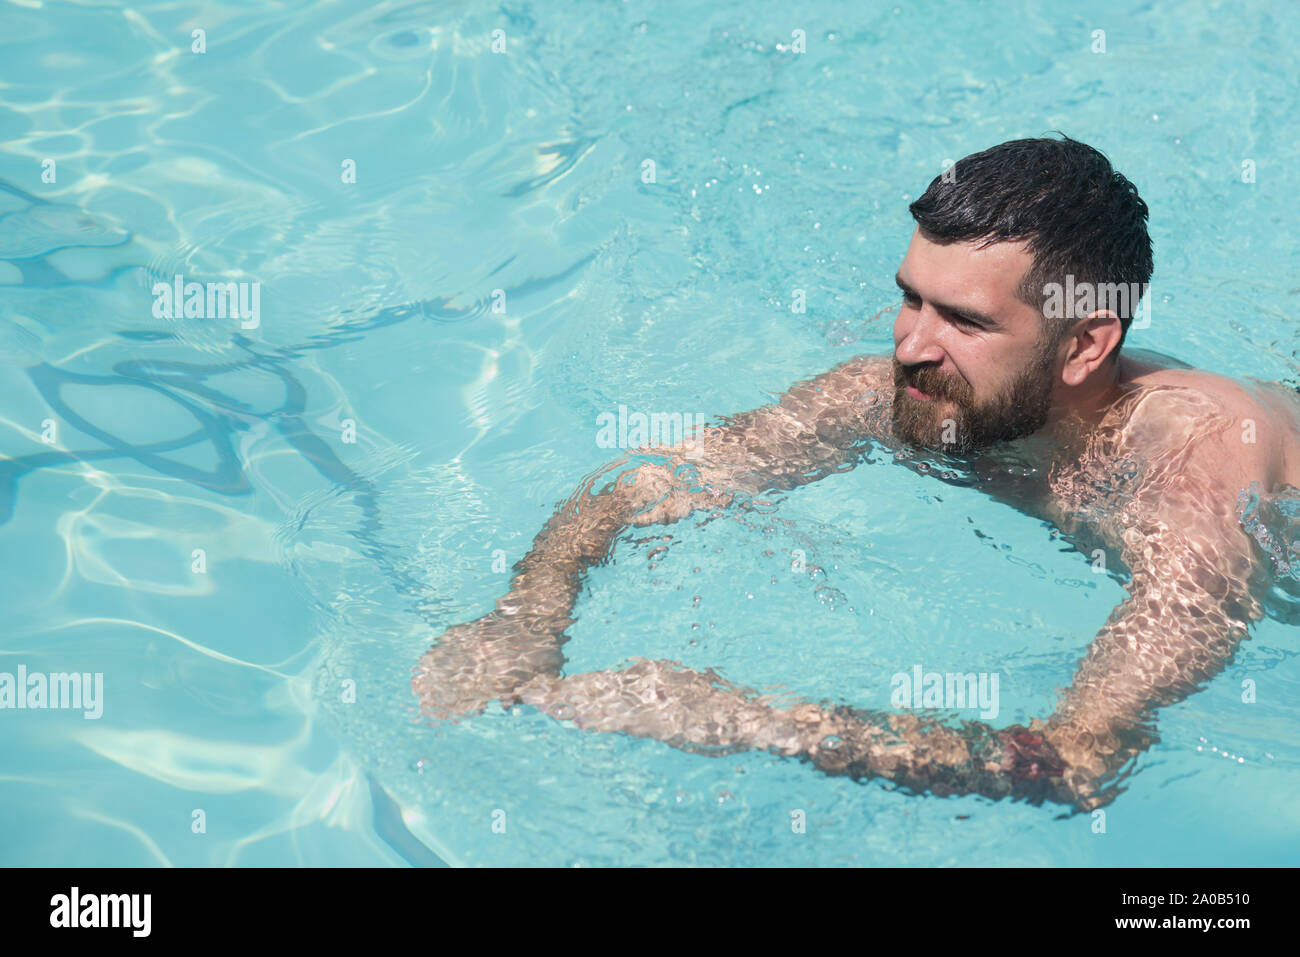 bearded man swimming in blue water. Summer vacation and travel to ocean. Relax in spa swimming pool, refreshment and skincare. Maldives or Miami beach Stock Photo